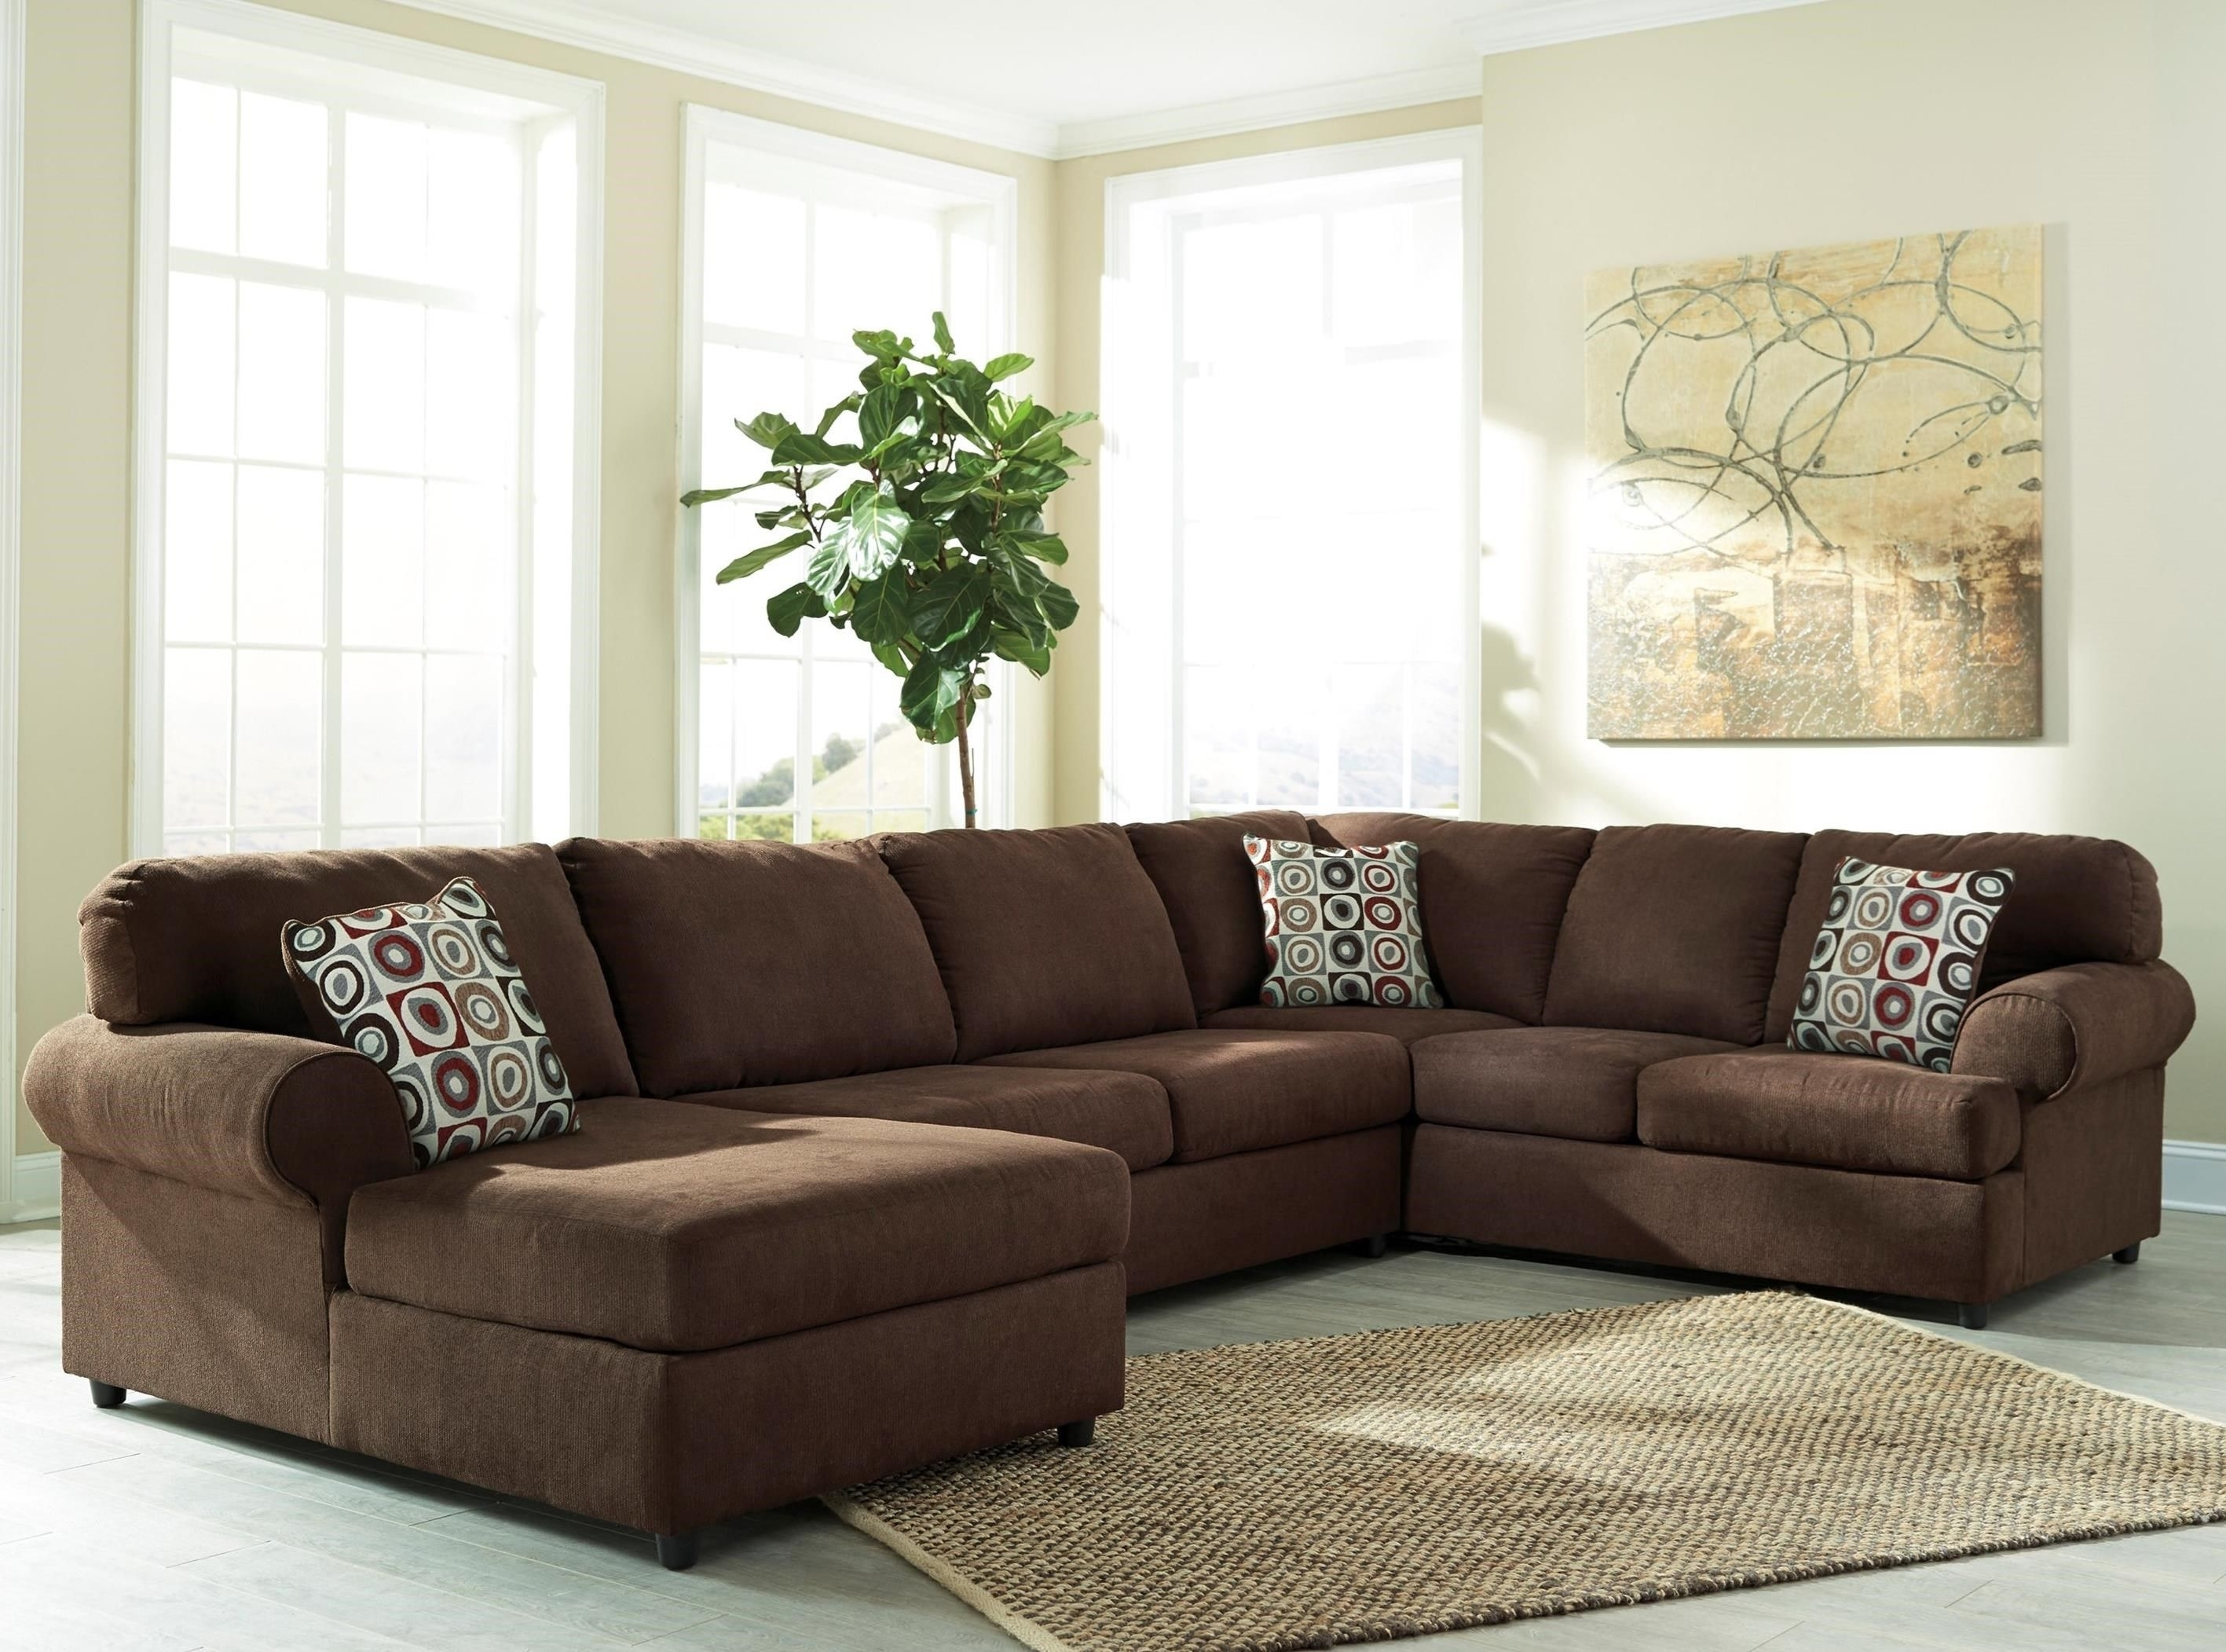 Jayceon Steel 3 Pc Laf Corner Chaise Sectional T Within Malbry Point 3 Piece Sectionals With Laf Chaise (View 23 of 25)